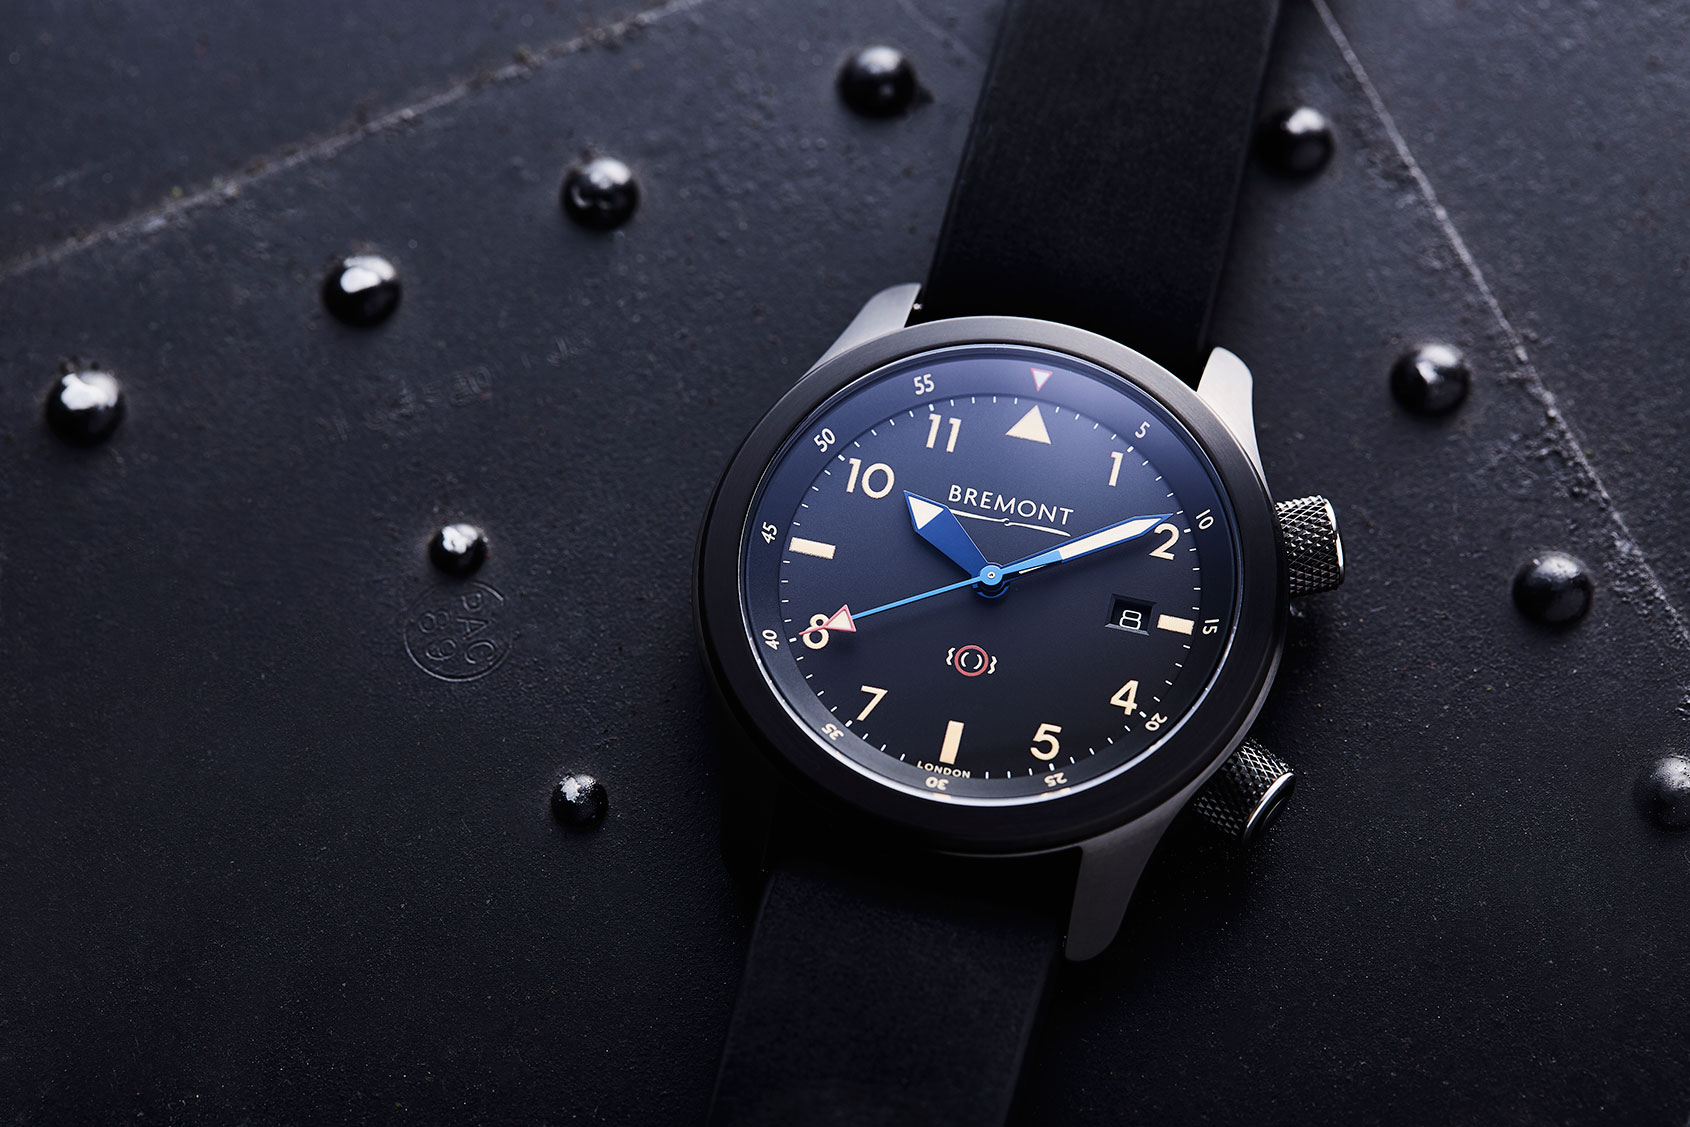 LIST: The British are coming! 8 of Britain's best watches